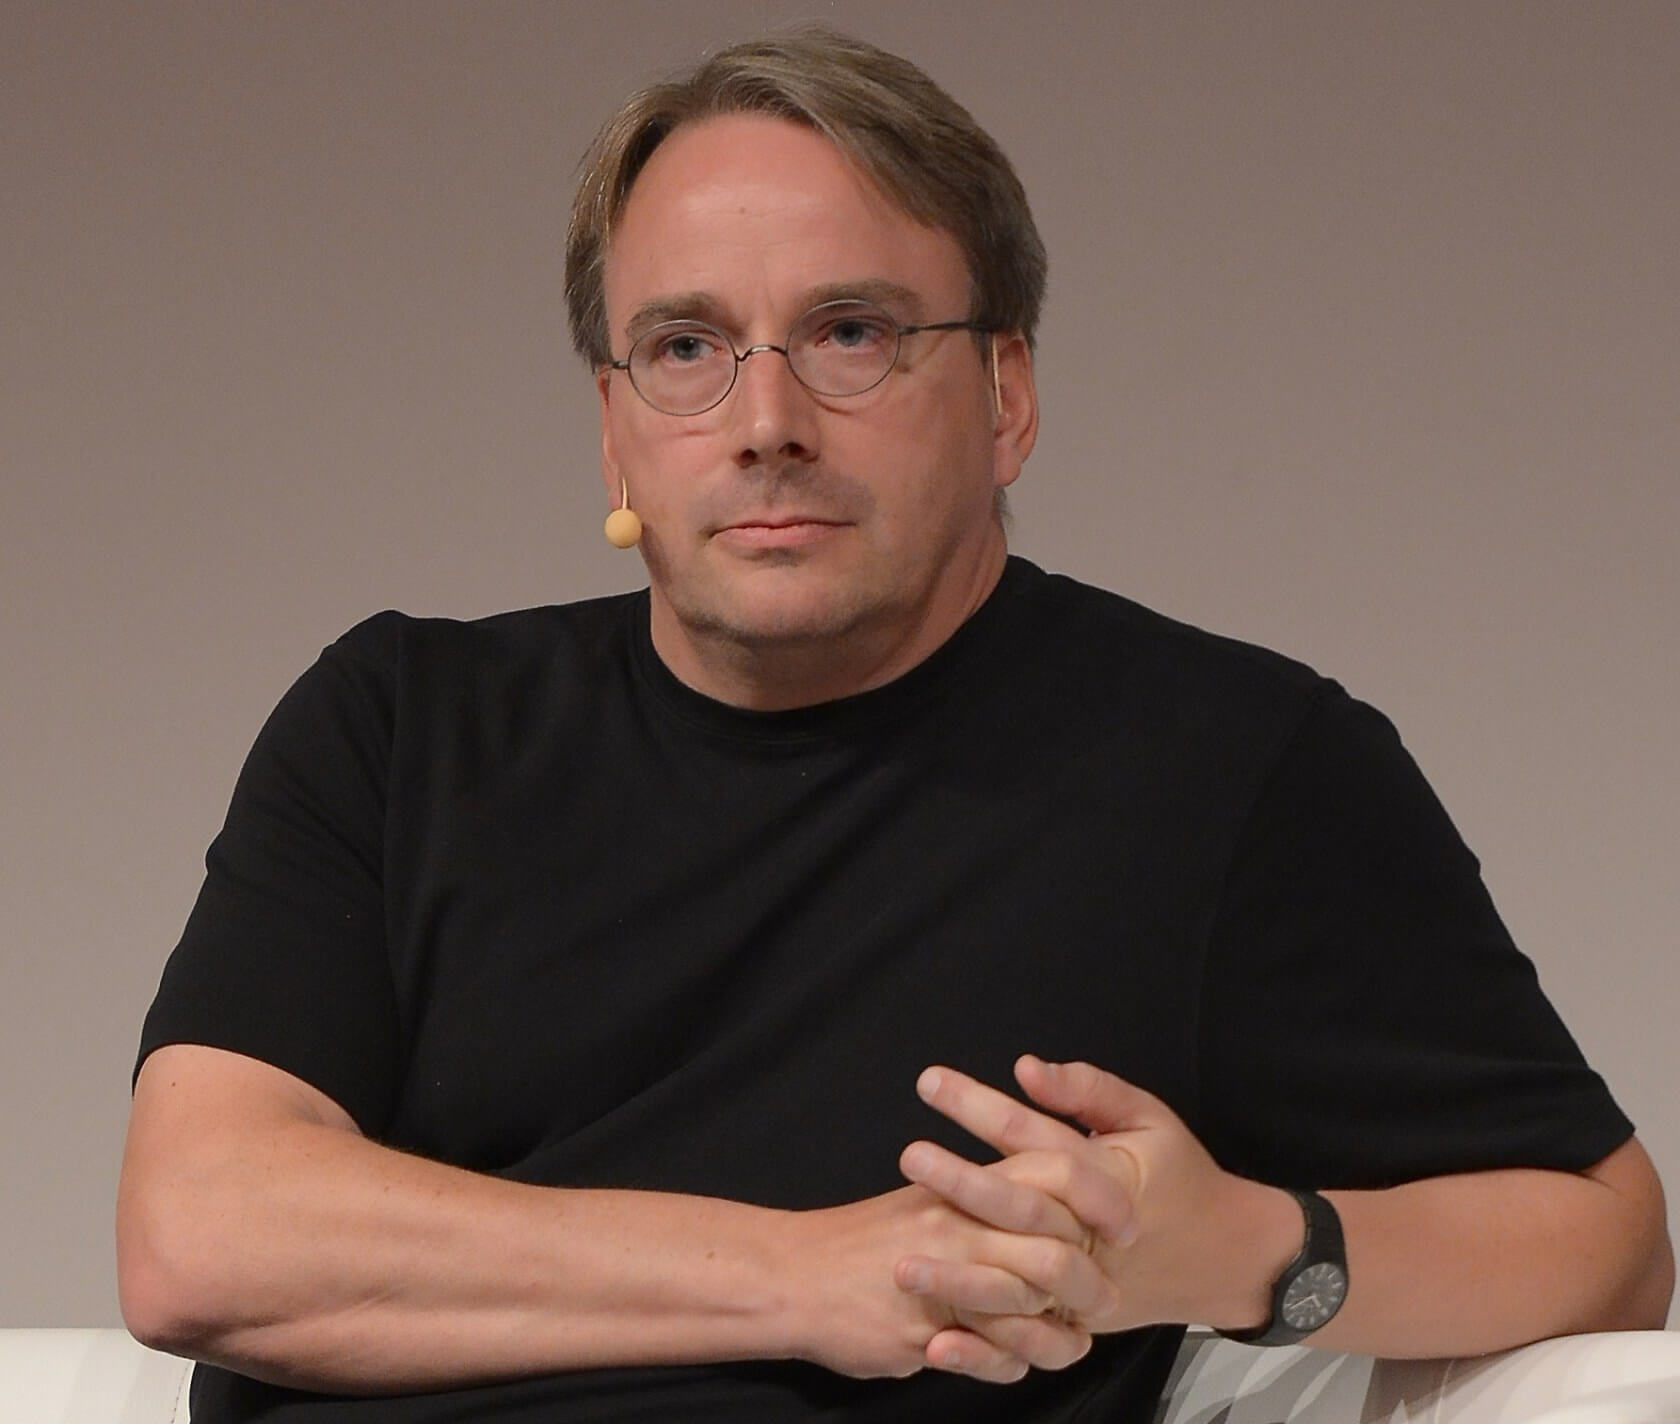 Linus Torvalds apologizes to Linux community for unprofessional 'flippant attacks'